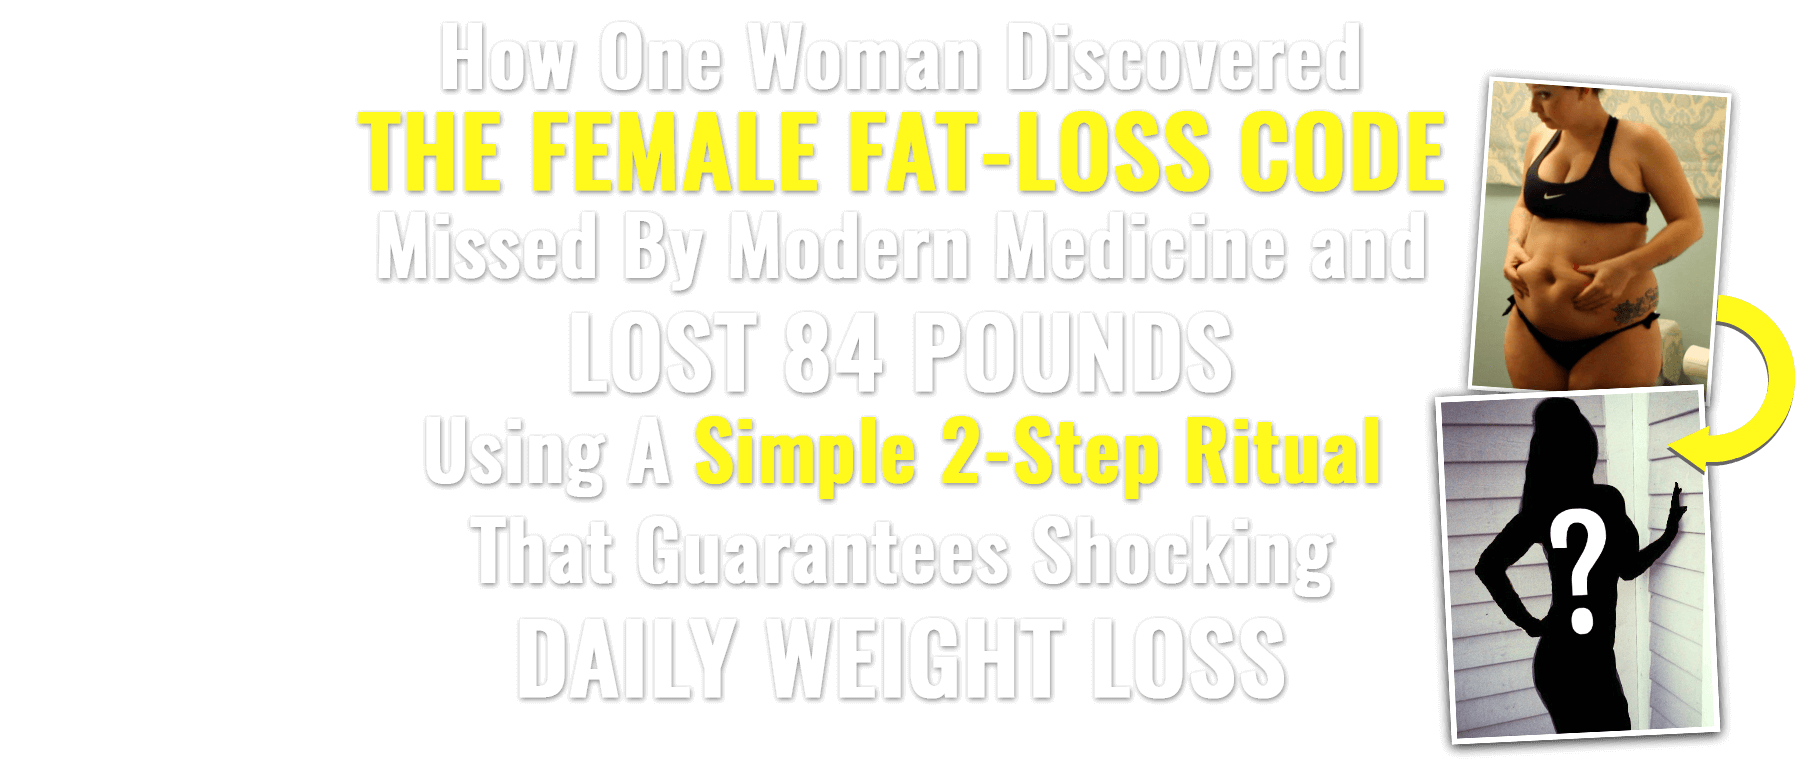 New Female Fat Loss Offer - Lose Weight Now